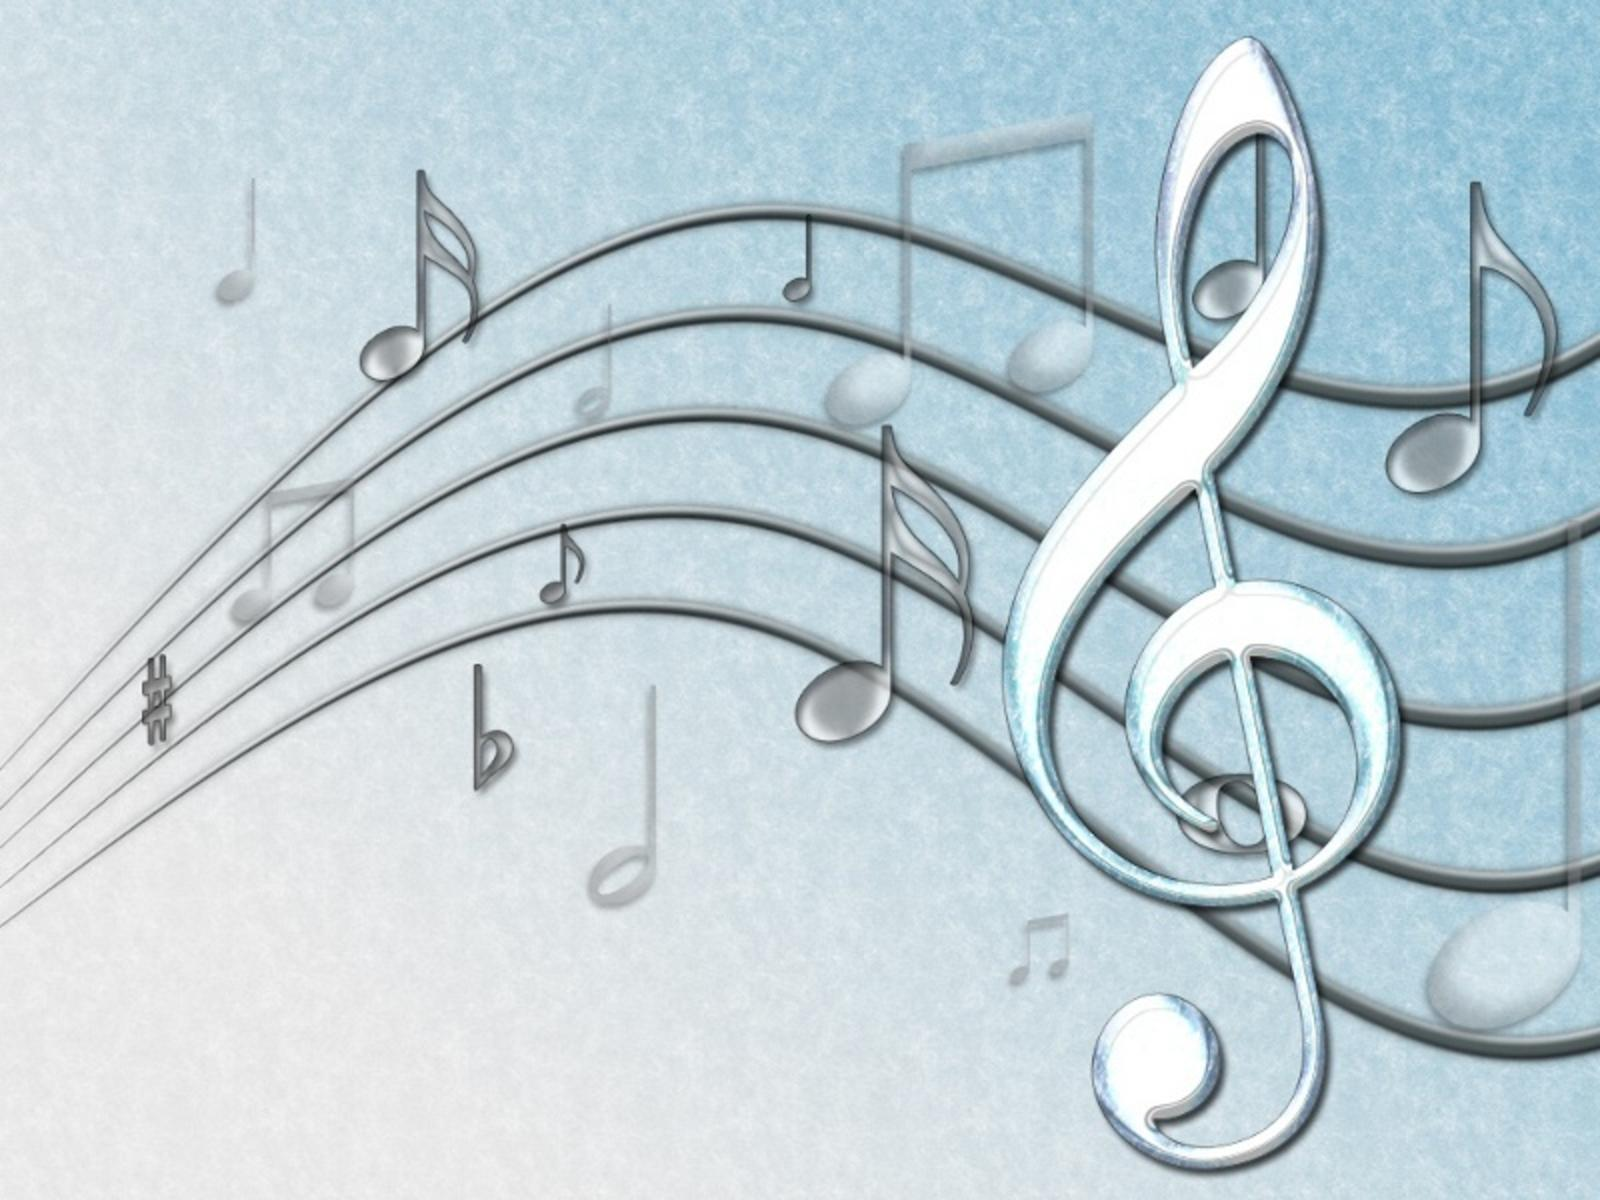 19 Music Note Background Designs Images